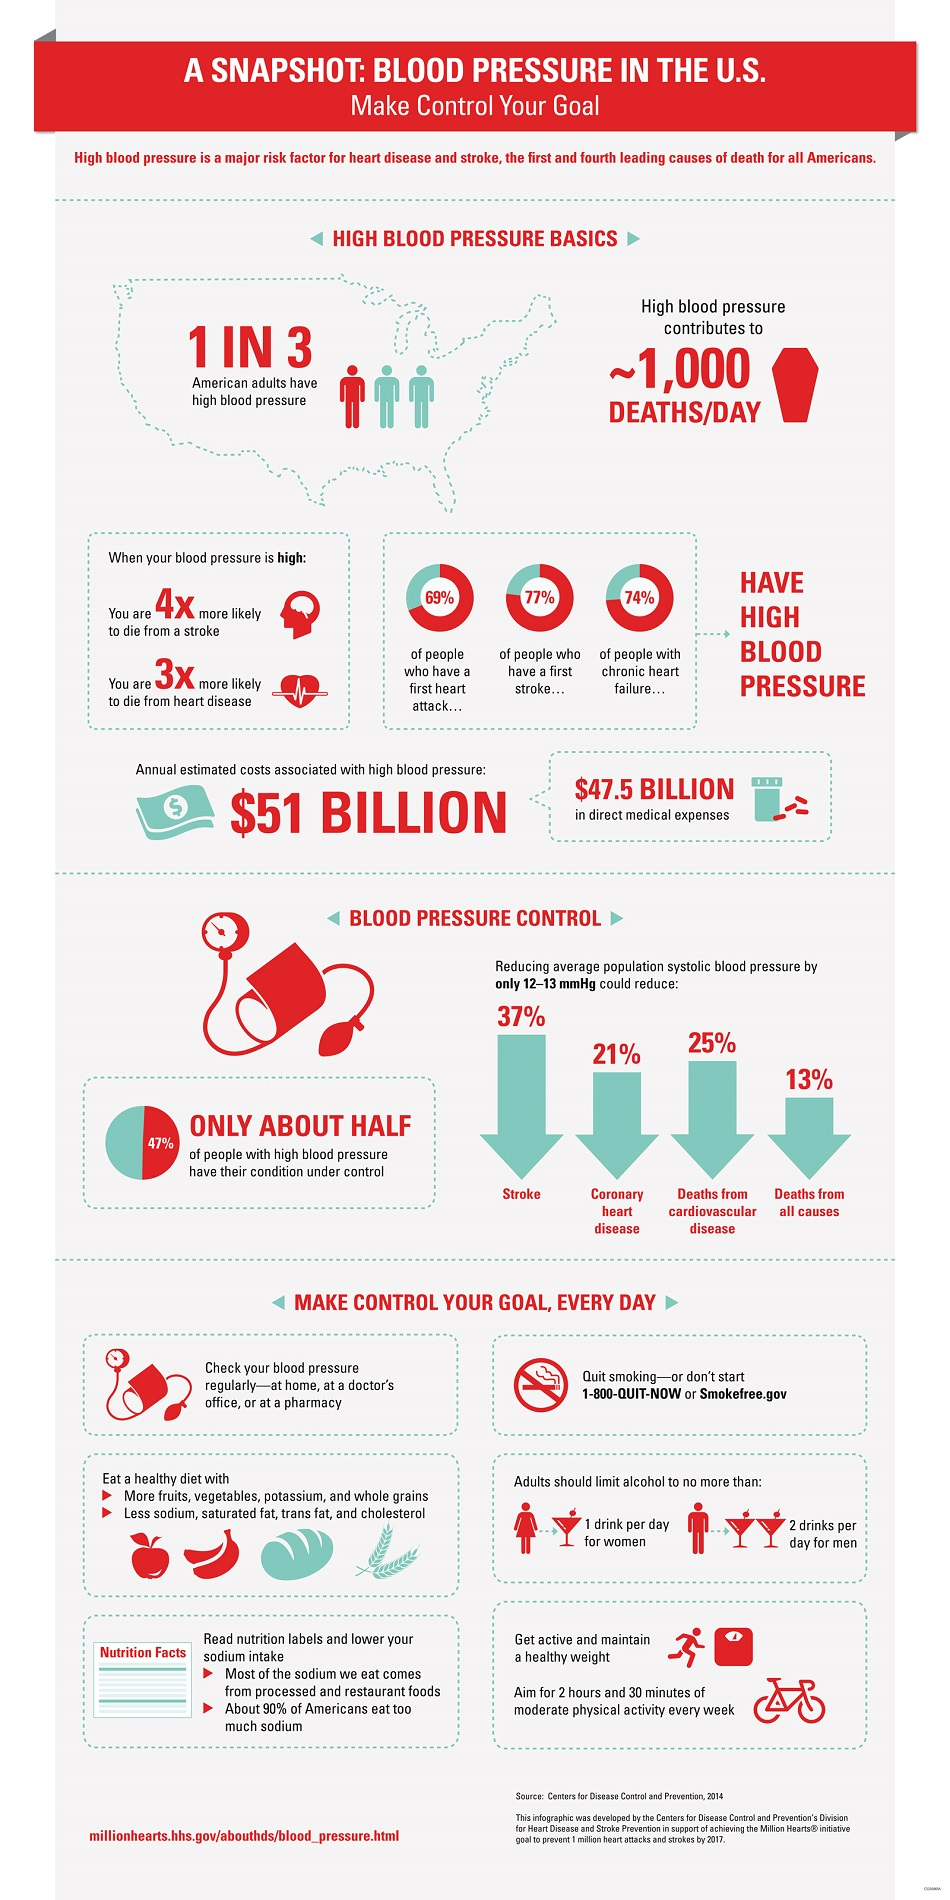 A Snapshot: Blood Pressure in the U.S. Make Control Your Goal. High blood pressure is a major risk factor for heart disease and stroke, the first and fourth leading causes of death for all Americans. High Blood Pressure Basics. 67 million American adults—1 in 3—have high blood pressure. High blood pressure contributes to ~1,000 deaths/day. When your blood pressure is high, you are 4 times more likely to die from a stroke, and you are 3 times more likely to die from heart disease. 69% of people who have a first heart attack, 77% of people who have a first stroke, and 74% of people with chronic heart failure have high blood pressure. Annual estimated costs associated with high blood pressure: $51 billion, including $47.5 billion in direct medical expenses. Blood Pressure Control. Only about half of people with high blood pressure have their condition under control. Reducing average population systolic blood pressure by only 12–13 mmHg could reduce stroke by 37%, coronary heart disease by 21%, deaths from cardiovascular disease by 25%, and deaths from all causes by 13%. Make Control Your Goal, Every Day. Check your blood pressure regularly—at home, at a doctor's office, or at a pharmacy. Eat a healthy diet with more fruits, vegetables, potassium, and whole grains and less sodium, saturated fat, trans fat, and cholesterol . Read nutrition labels and lower your sodium intake. Most of the sodium we eat comes from processed and restaurant foods. About 90% of Americans eat too much sodium. Quit smoking—or don't start. 1-800-QUIT-NOW or Smokefree.gov. Adults should limit alcohol to no more than 1 drink per day for women and 2 drinks per day for men. Get active and maintain a healthy weight. Aim for 2 hours and 30 minutes of moderate physical activity every week. This infographic was developed by the Centers for Disease Control and Prevention's Division for Heart Disease and Stroke Prevention in support of achieving the Million Hearts® initiative goal to prevent 1 million heart attacks and strokes by 2017.